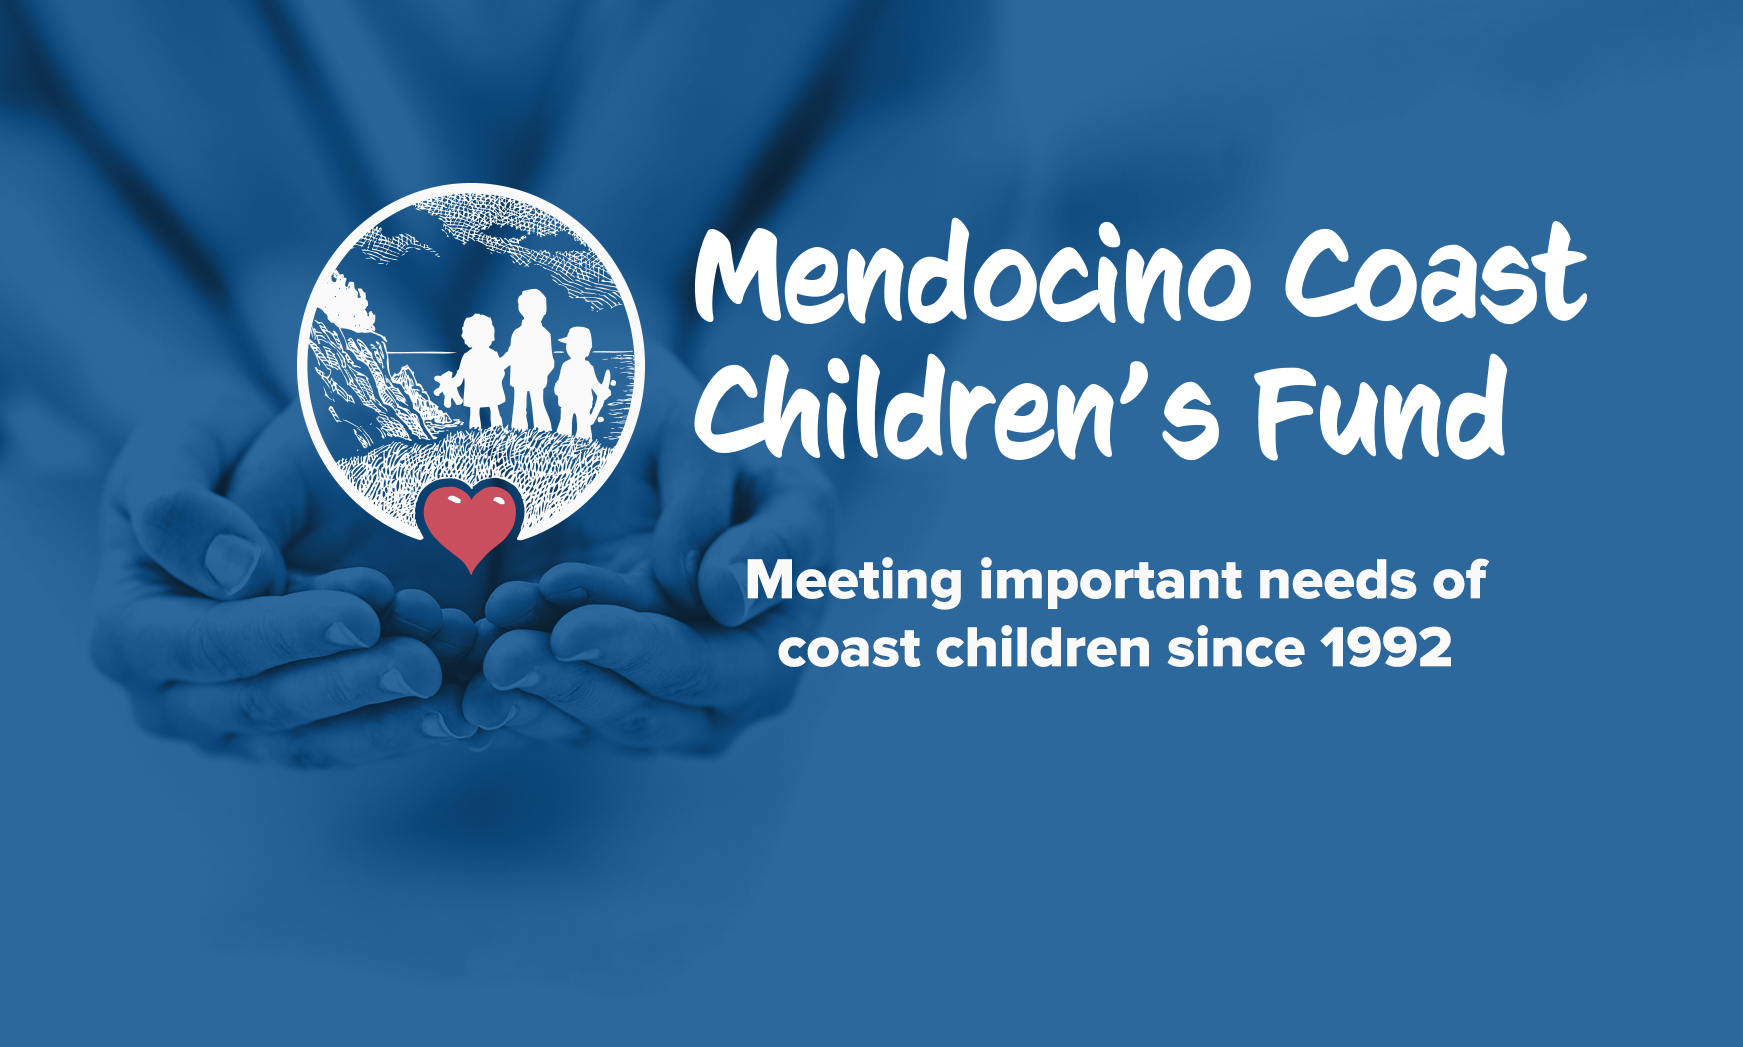 Mendocino Coast Children's Fund and Logo